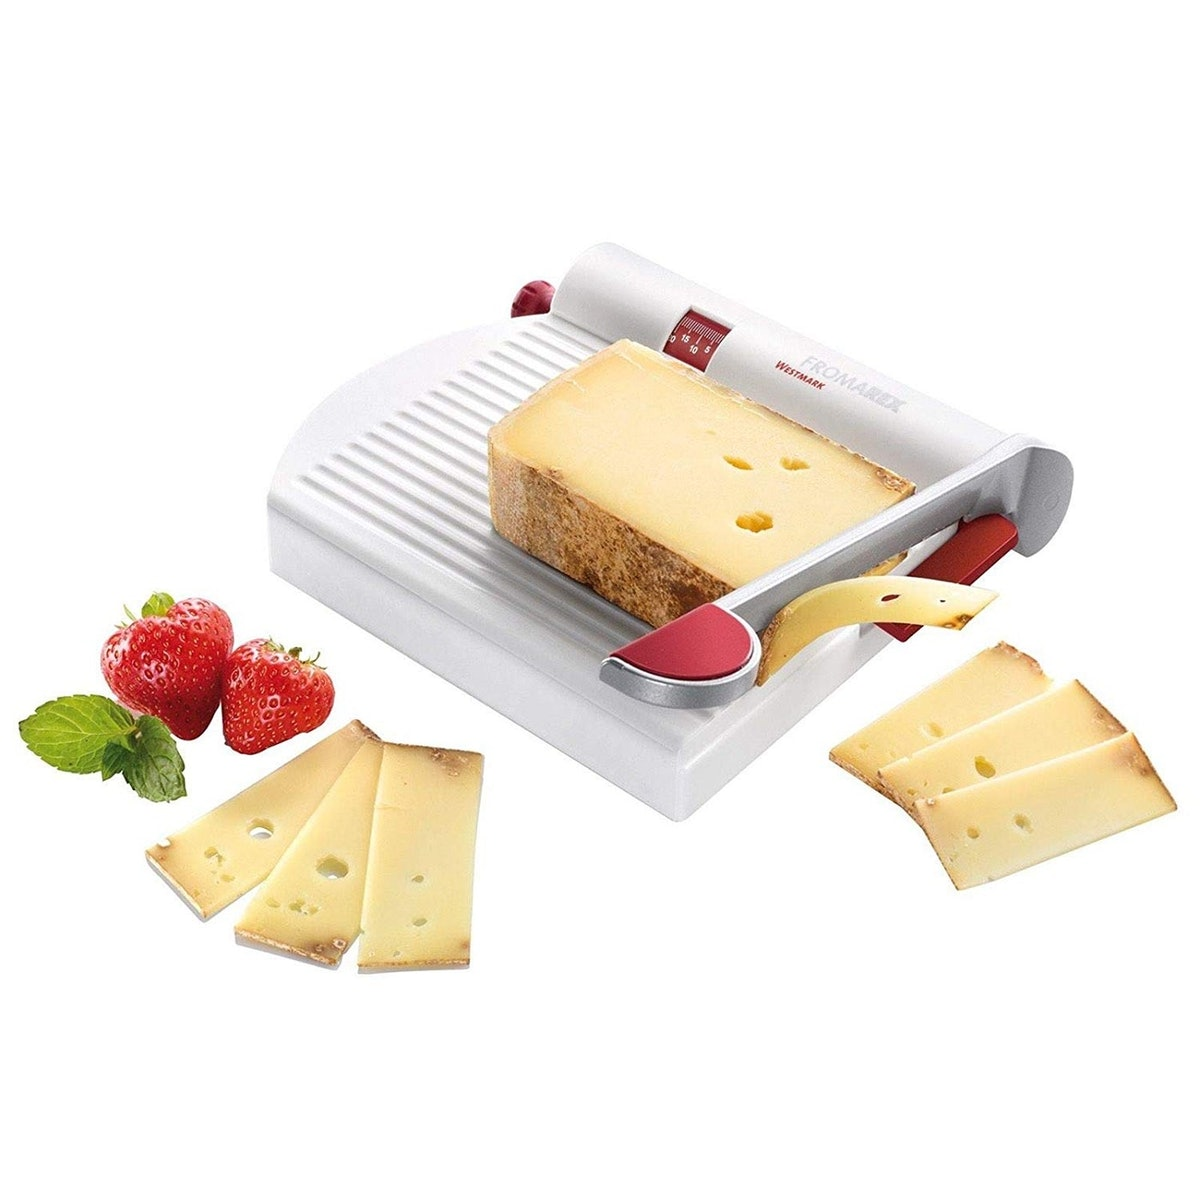 Westmark Germany Cheese and Food Slicer